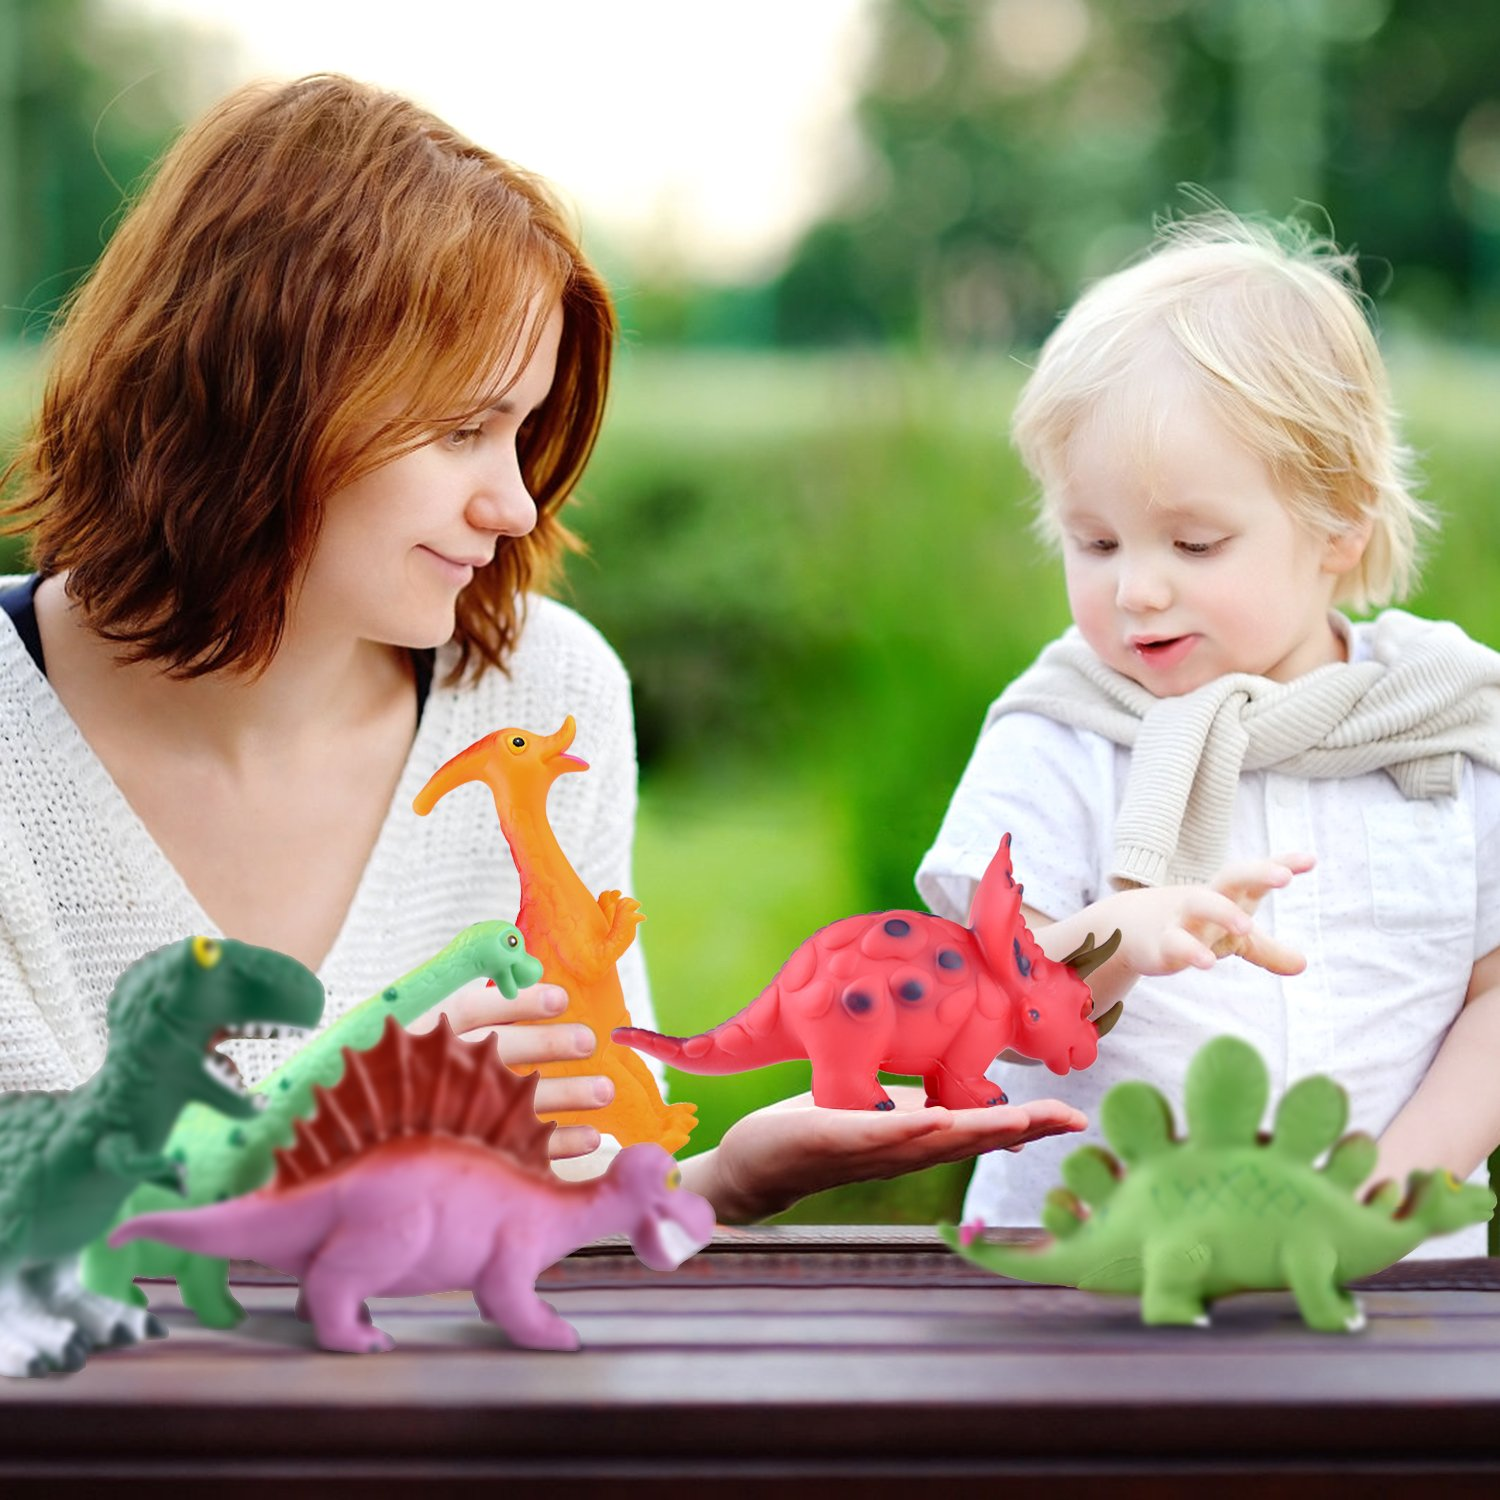 Toddler Birthday Gifts FUN LITTLE TOYS 6 Pack Dinosaur Figures Playset Water Squirt Toys Party Favors Perfect as Bathtub Toys 9 to 12 Dinosaur Baby Bath Toys Dinosaur Party Supplies